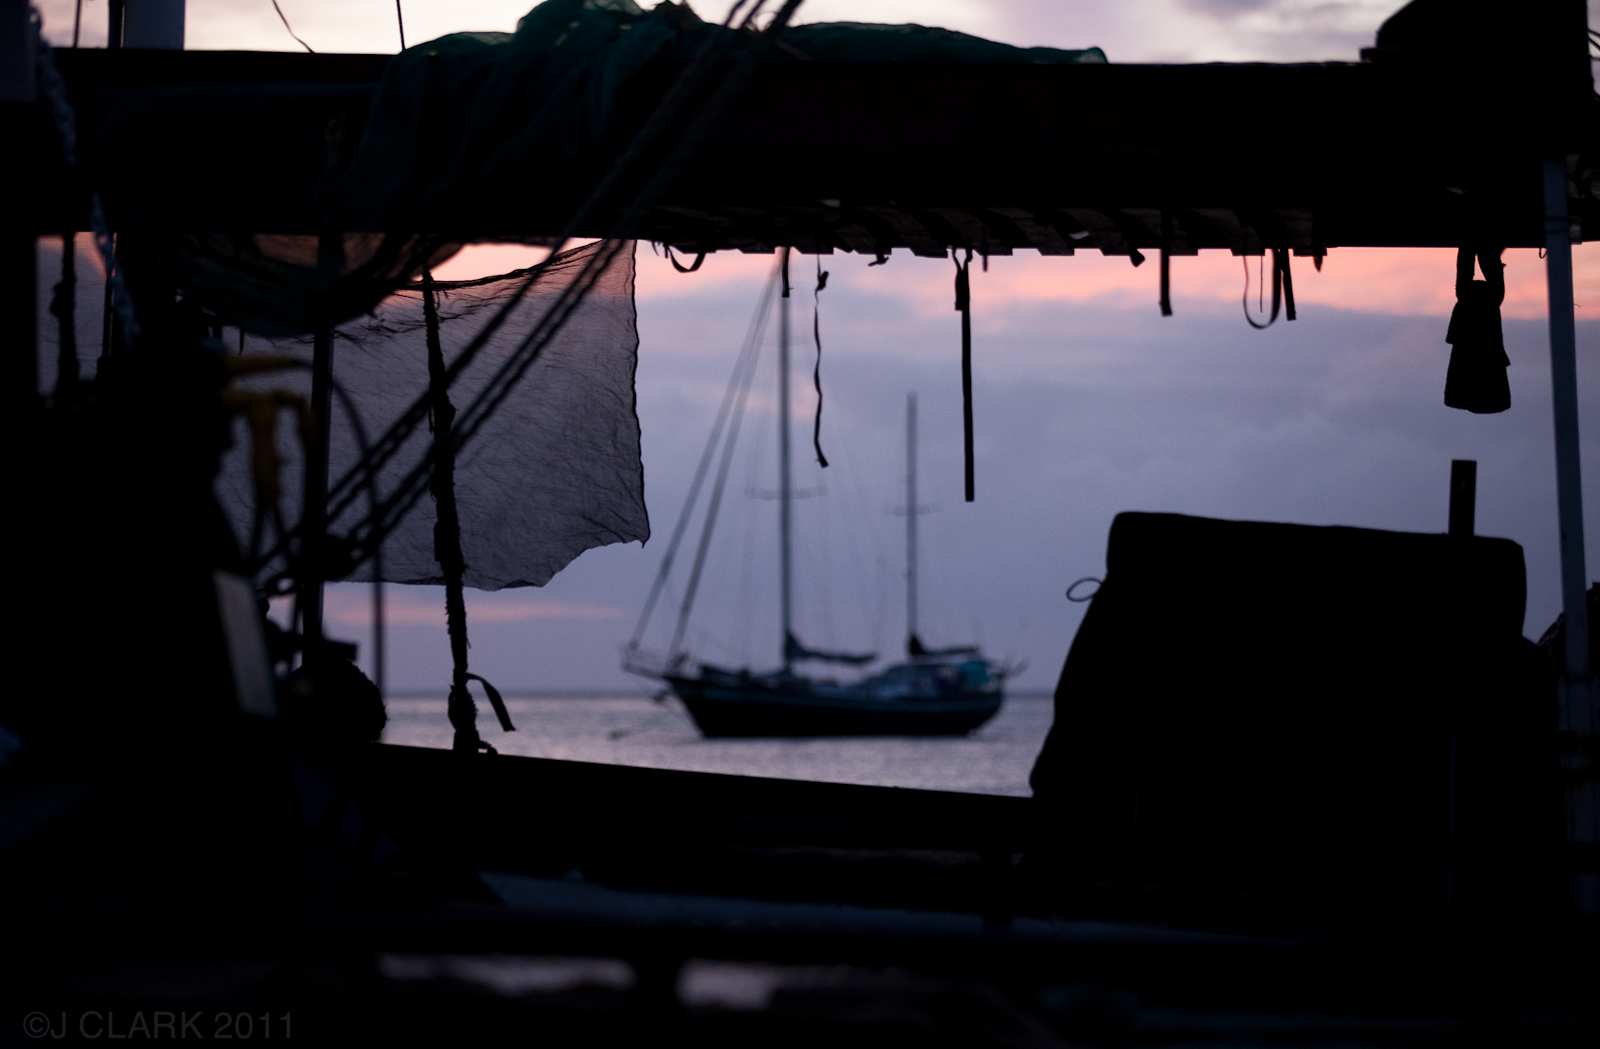 SAILING SUNSET IN PORT VILA, VANUATU